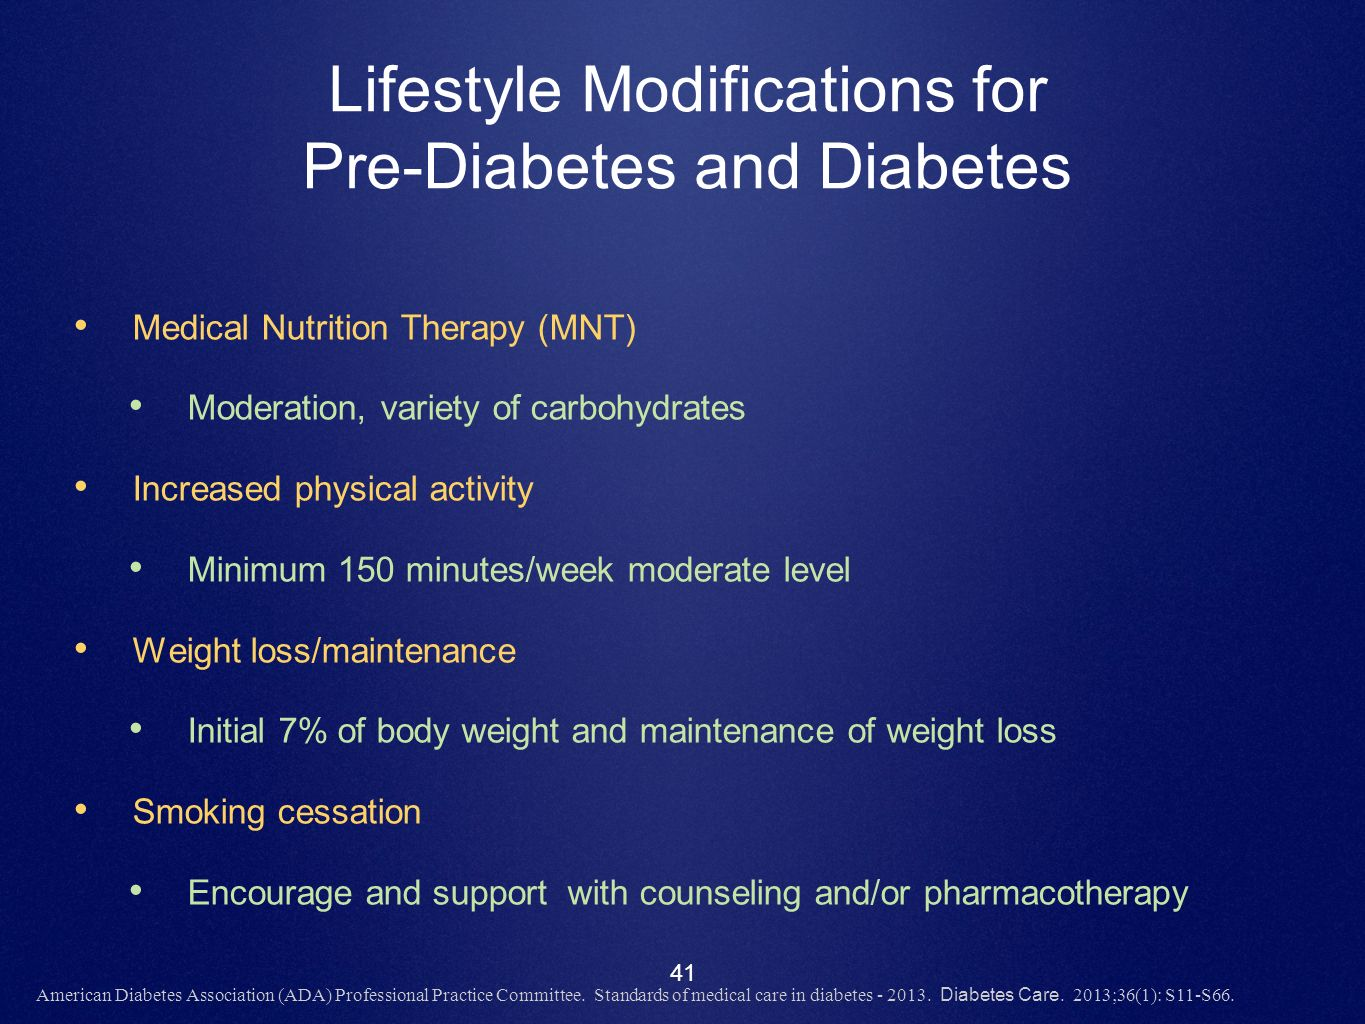 Lifestyle Modifications for Pre-Diabetes and Diabetes